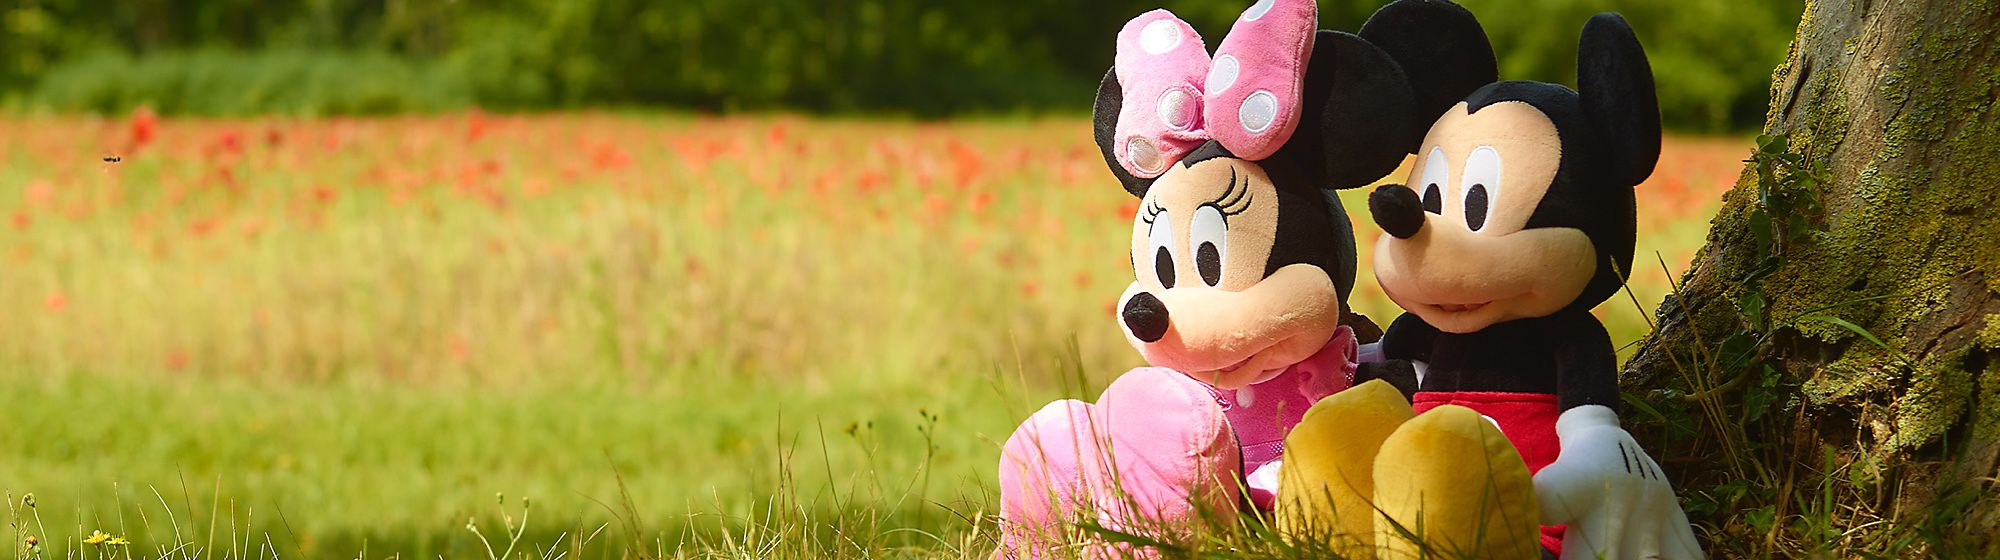 Mickey Mouse & Friends Discover our range of Mickey Mouse & Friends merchandise  including soft toys, playsets, homeware, figurines and more